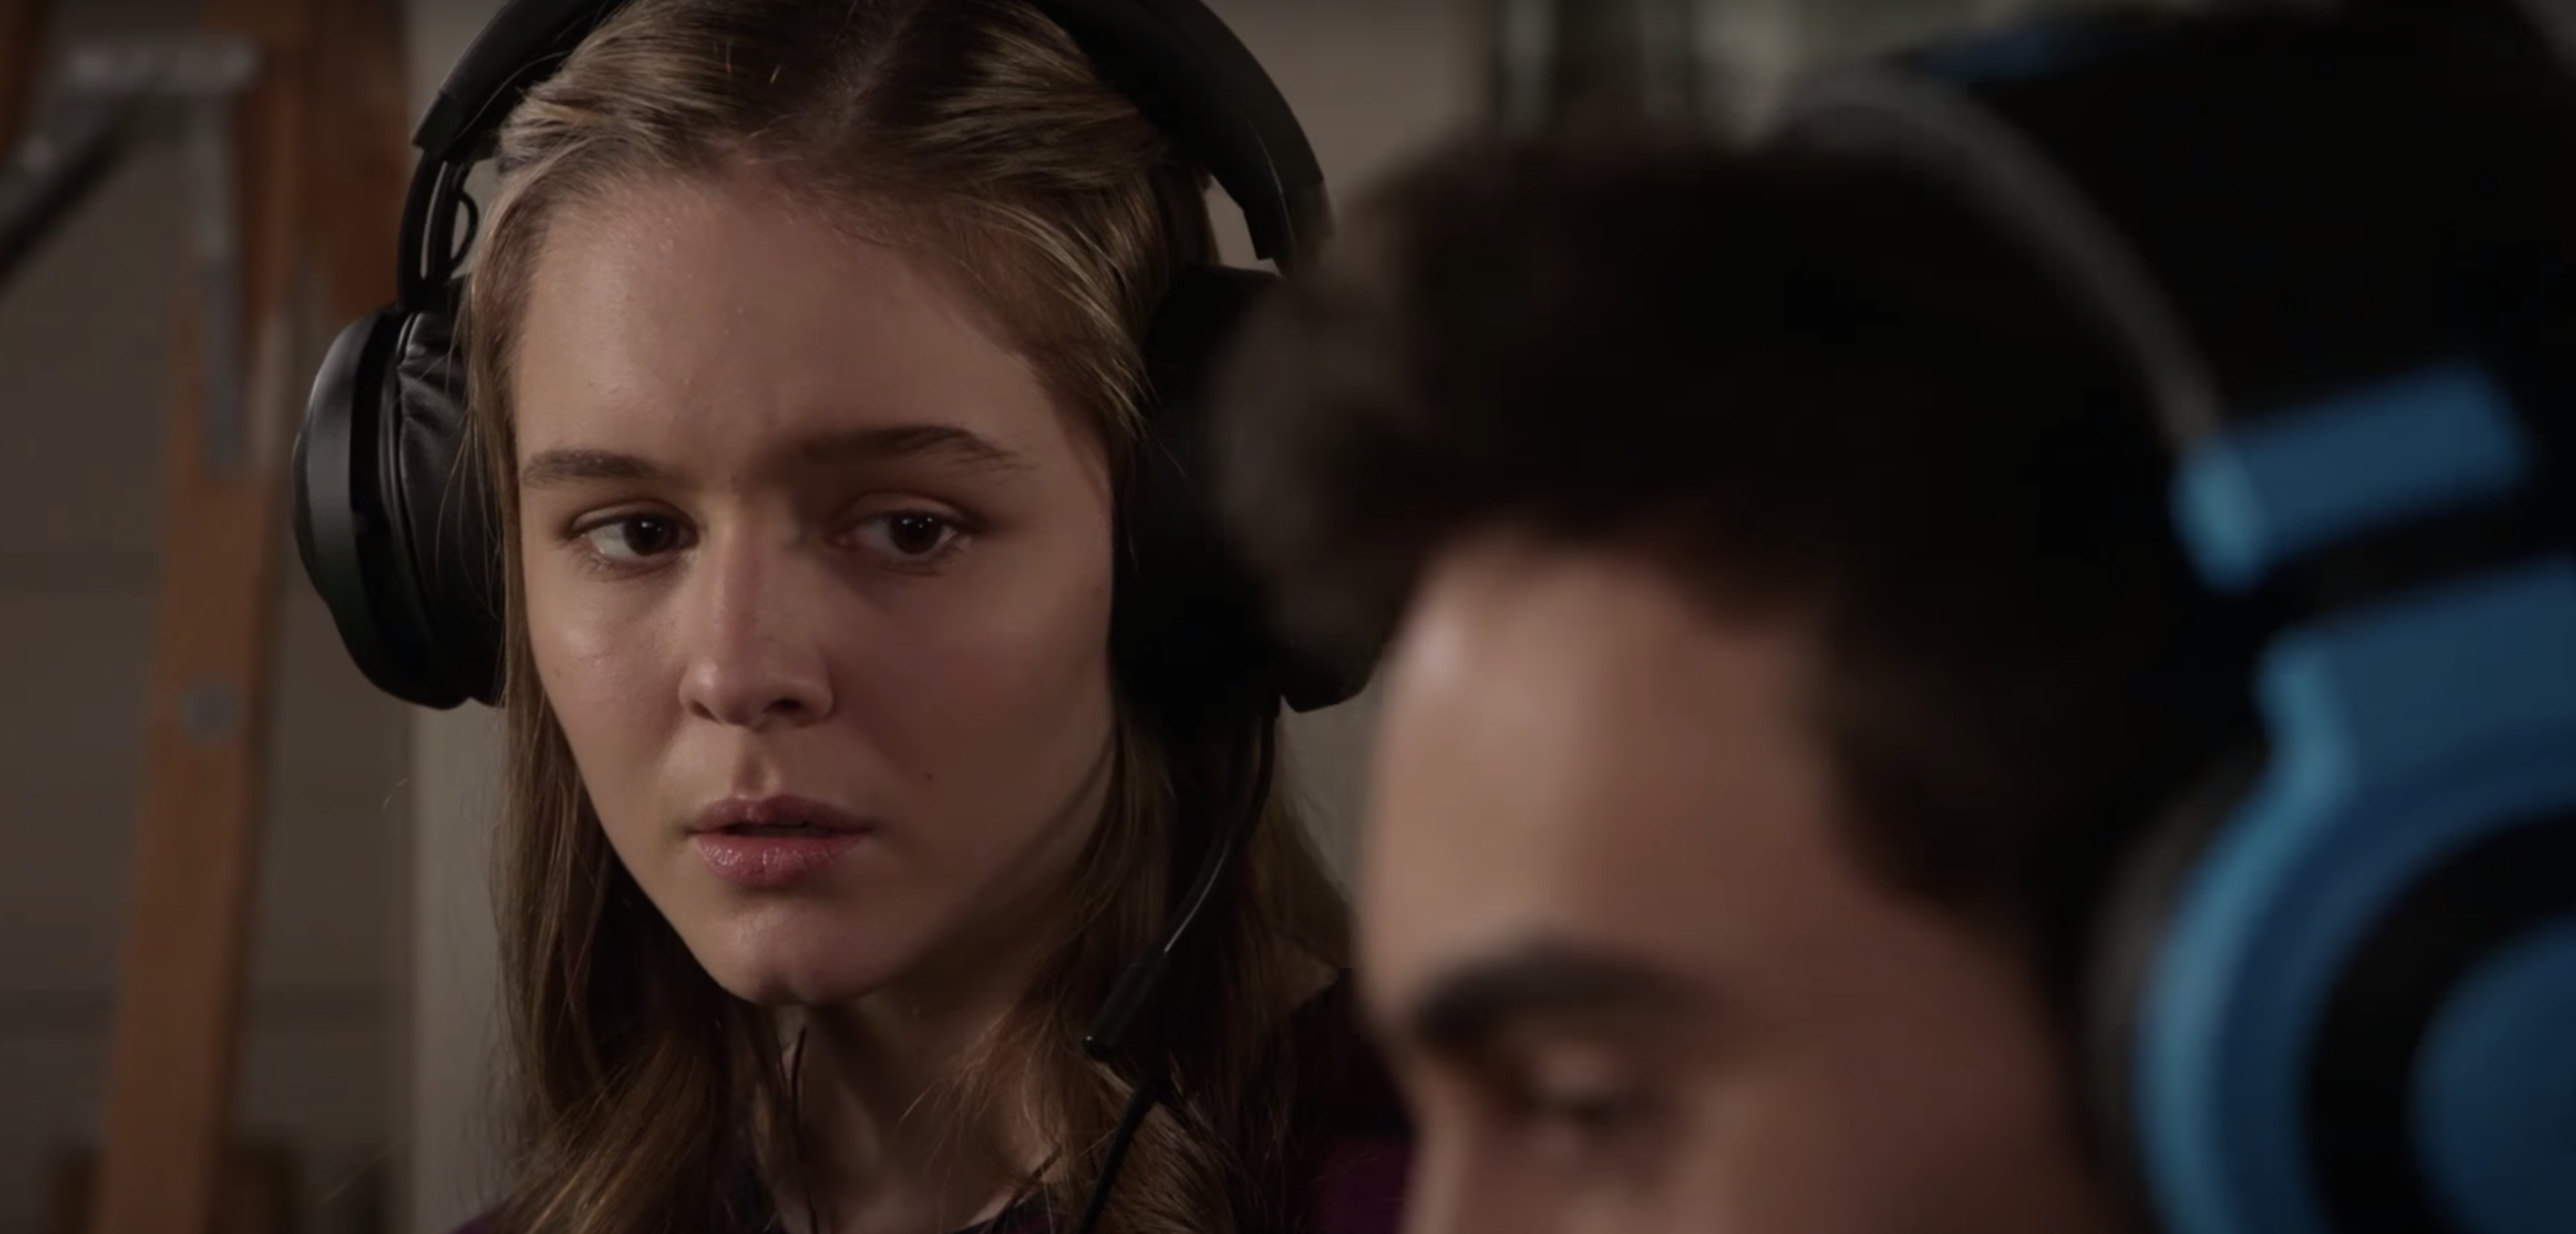 A young woman with a headset on looks upset